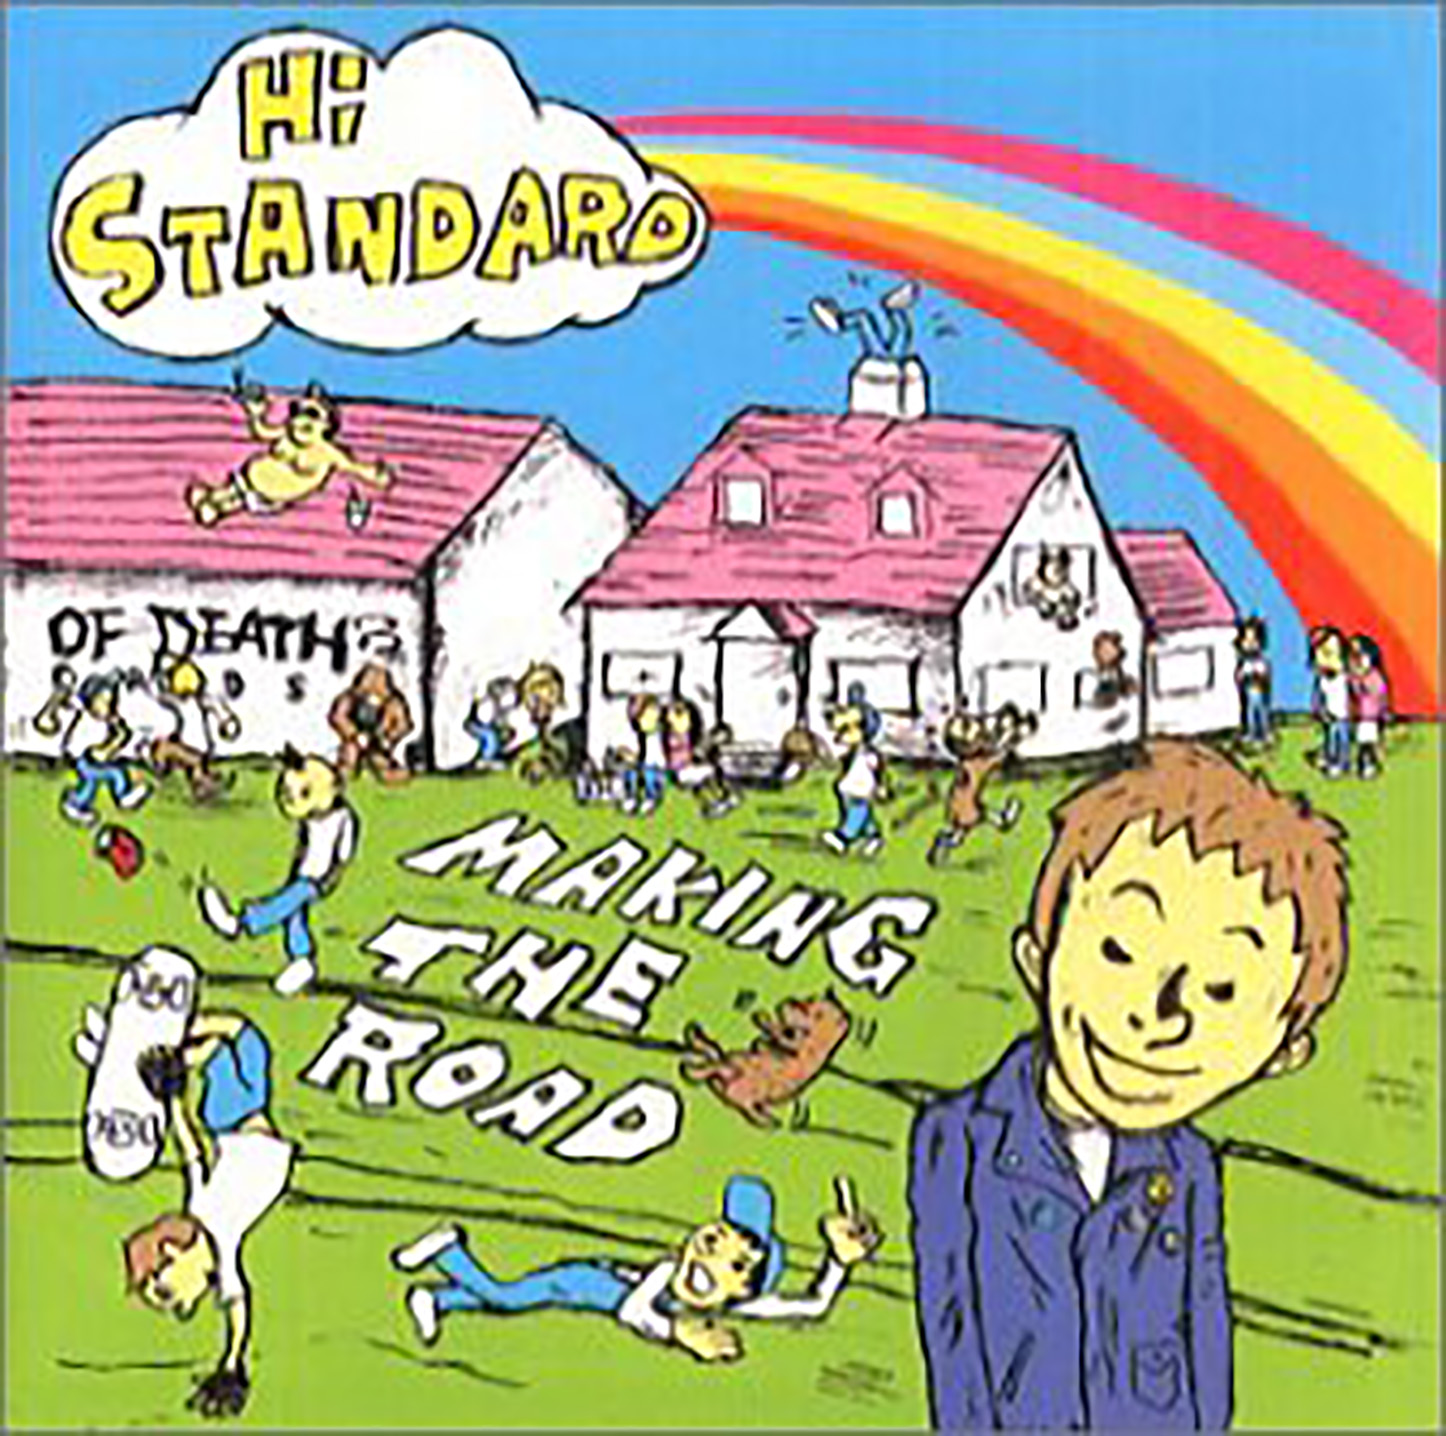 「Stay Gold」収録アルバム『MAKING THE ROAD』/Hi-STANDARD